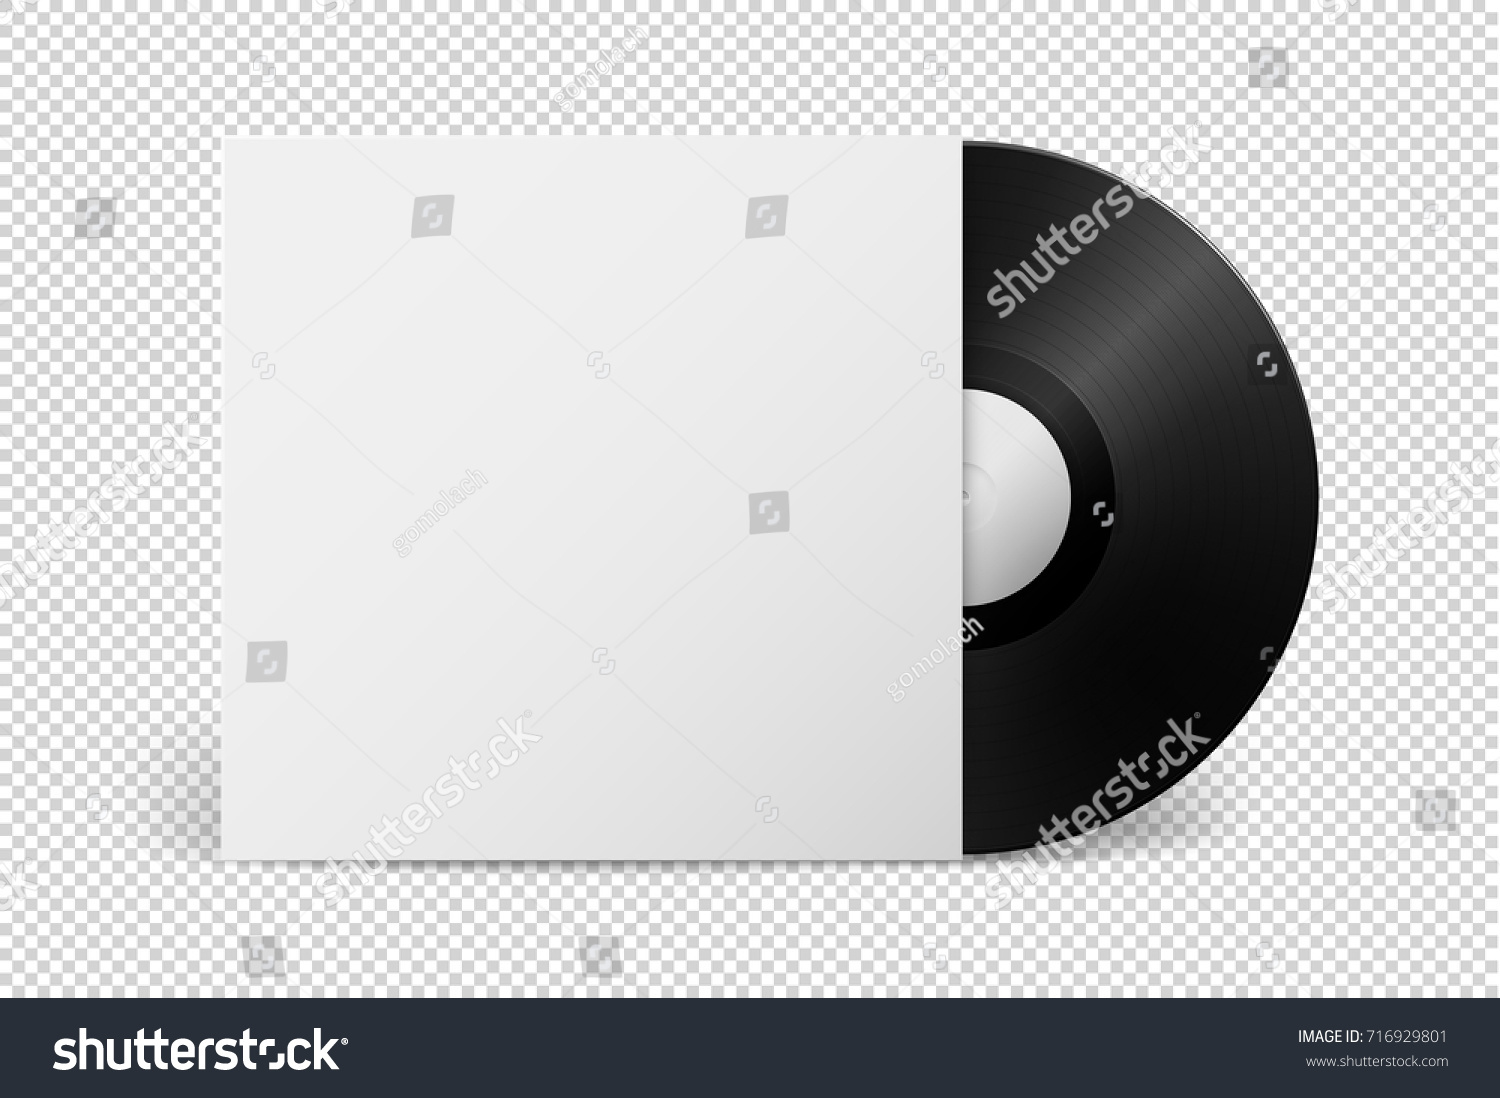 Realistic empty music gramophone vinyl lp stock vector 716929801 realistic empty music gramophone vinyl lp record with cover icon closeup isolated on transparent background maxwellsz